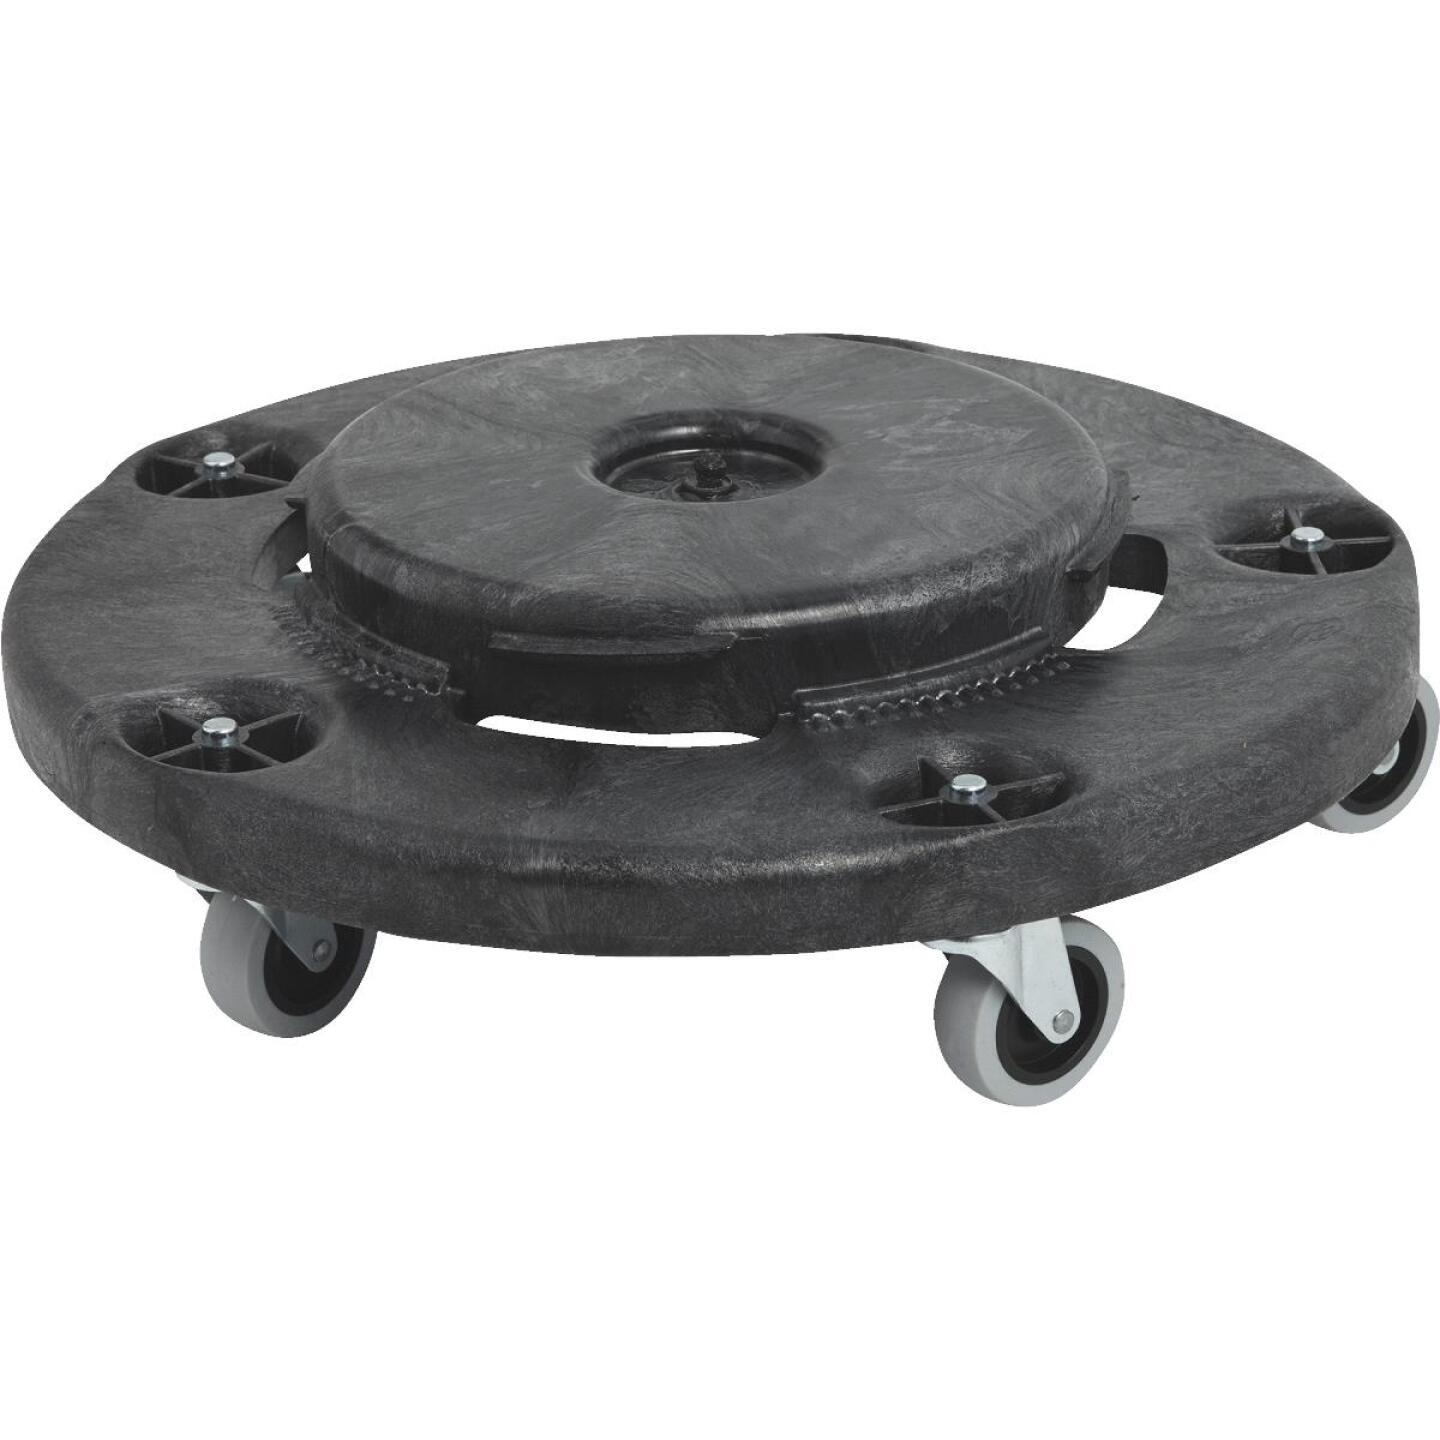 Rubbermaid Commercial Brute Trash Can Dolly Image 1